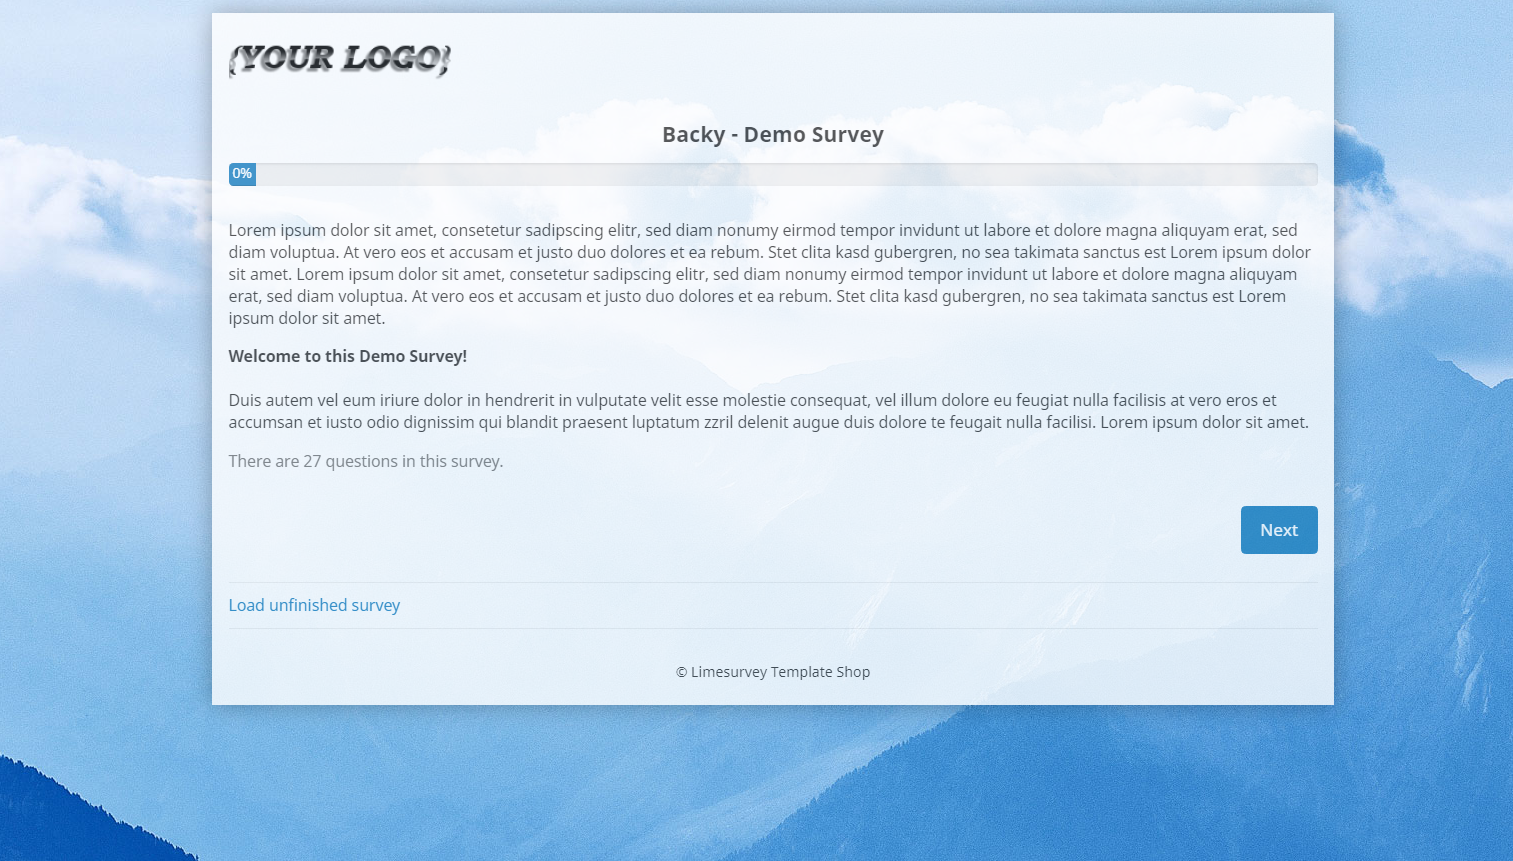 limesurvey_theme_backy_welcome_page